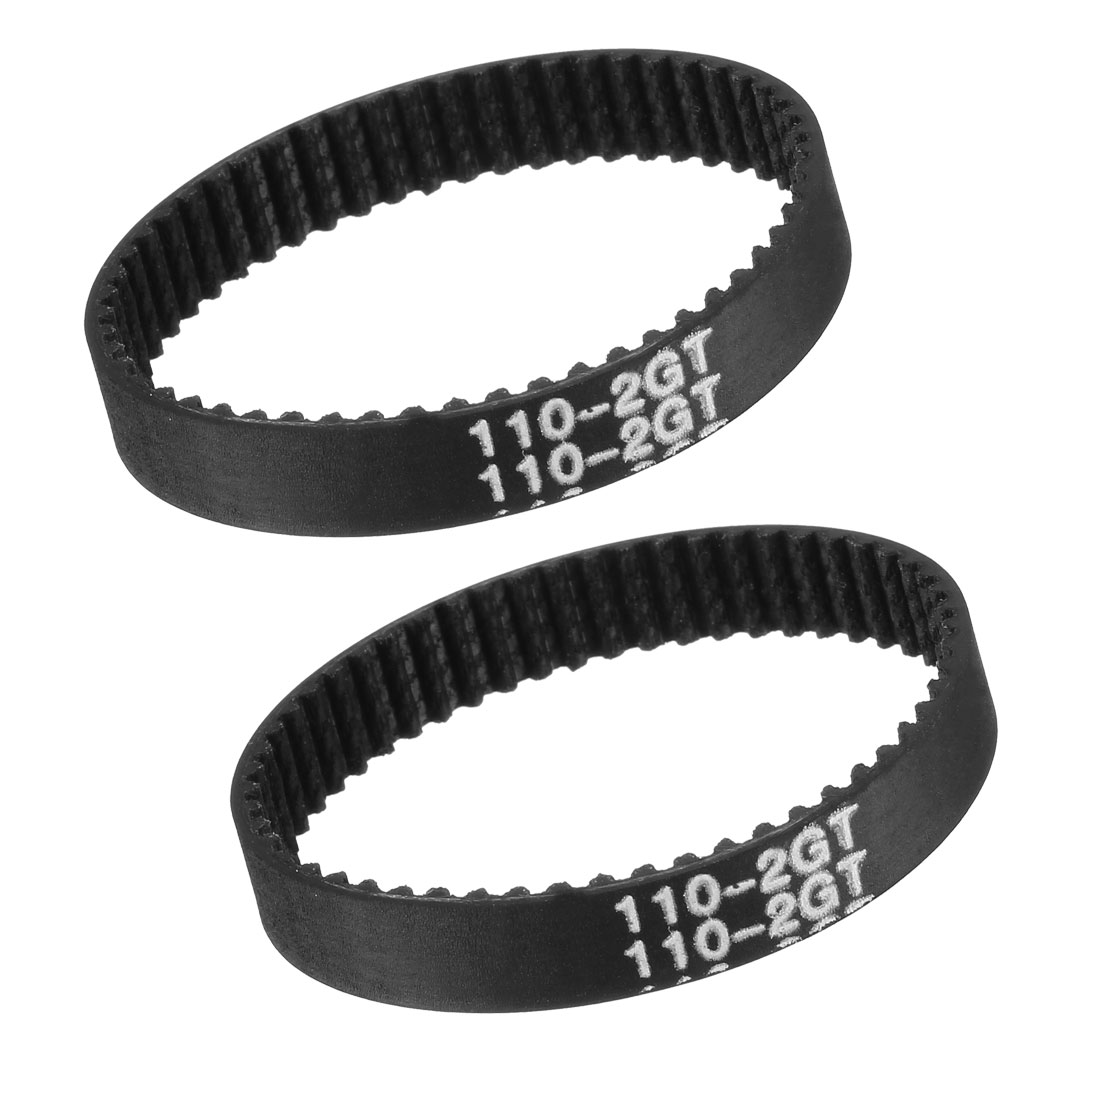 GT2 Timing Belt 110mm Closed Fit Synchronous Wheel for 3D Printer 2pcs